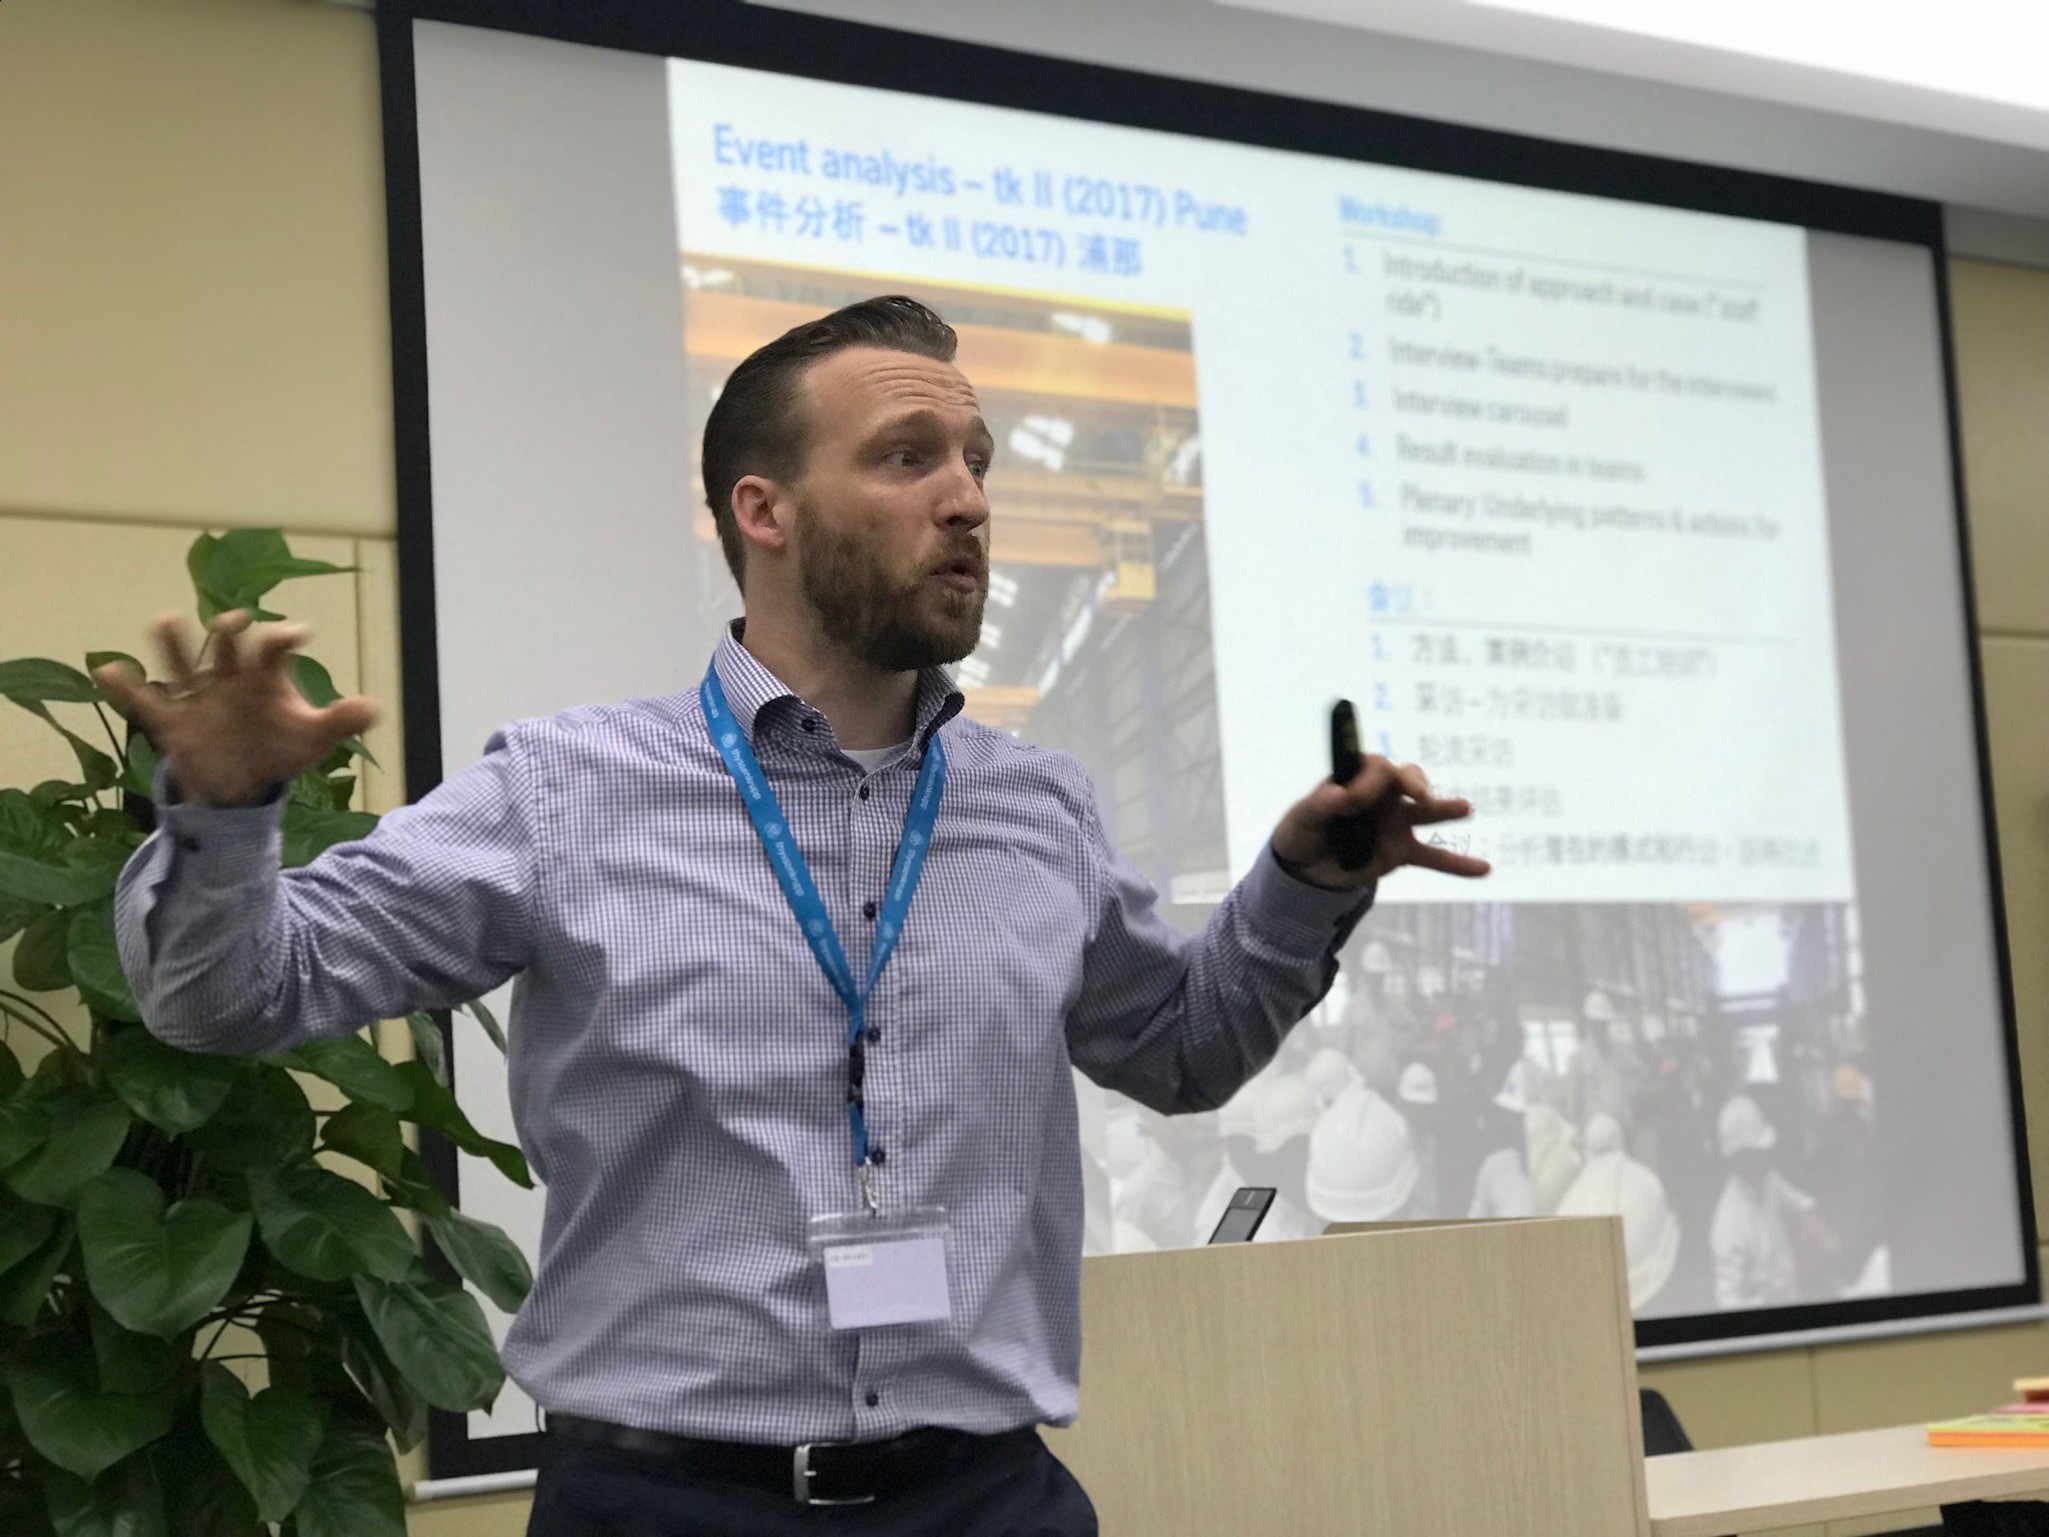 Dr. David Maus, Program Director, in a workshop on thyssenkrupp's safety culture thyssenkrupp